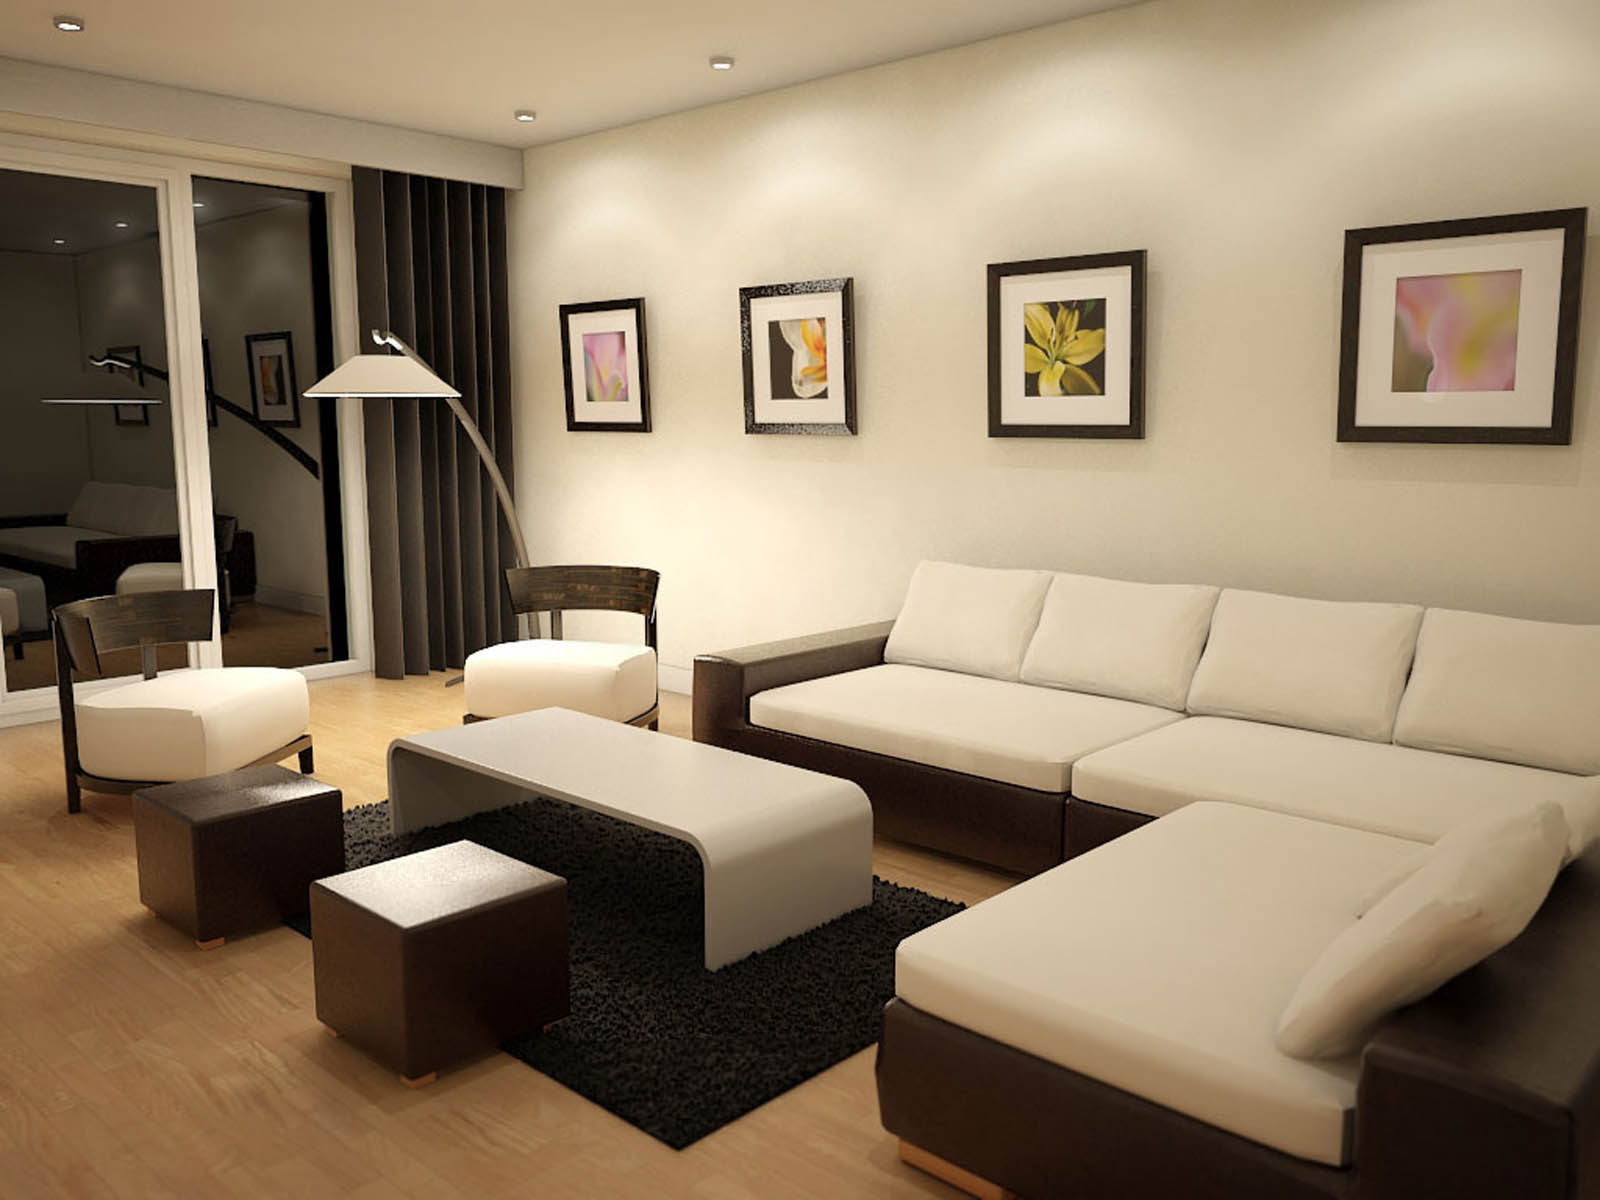 Where to Place A Lamp Relative To A Sofa